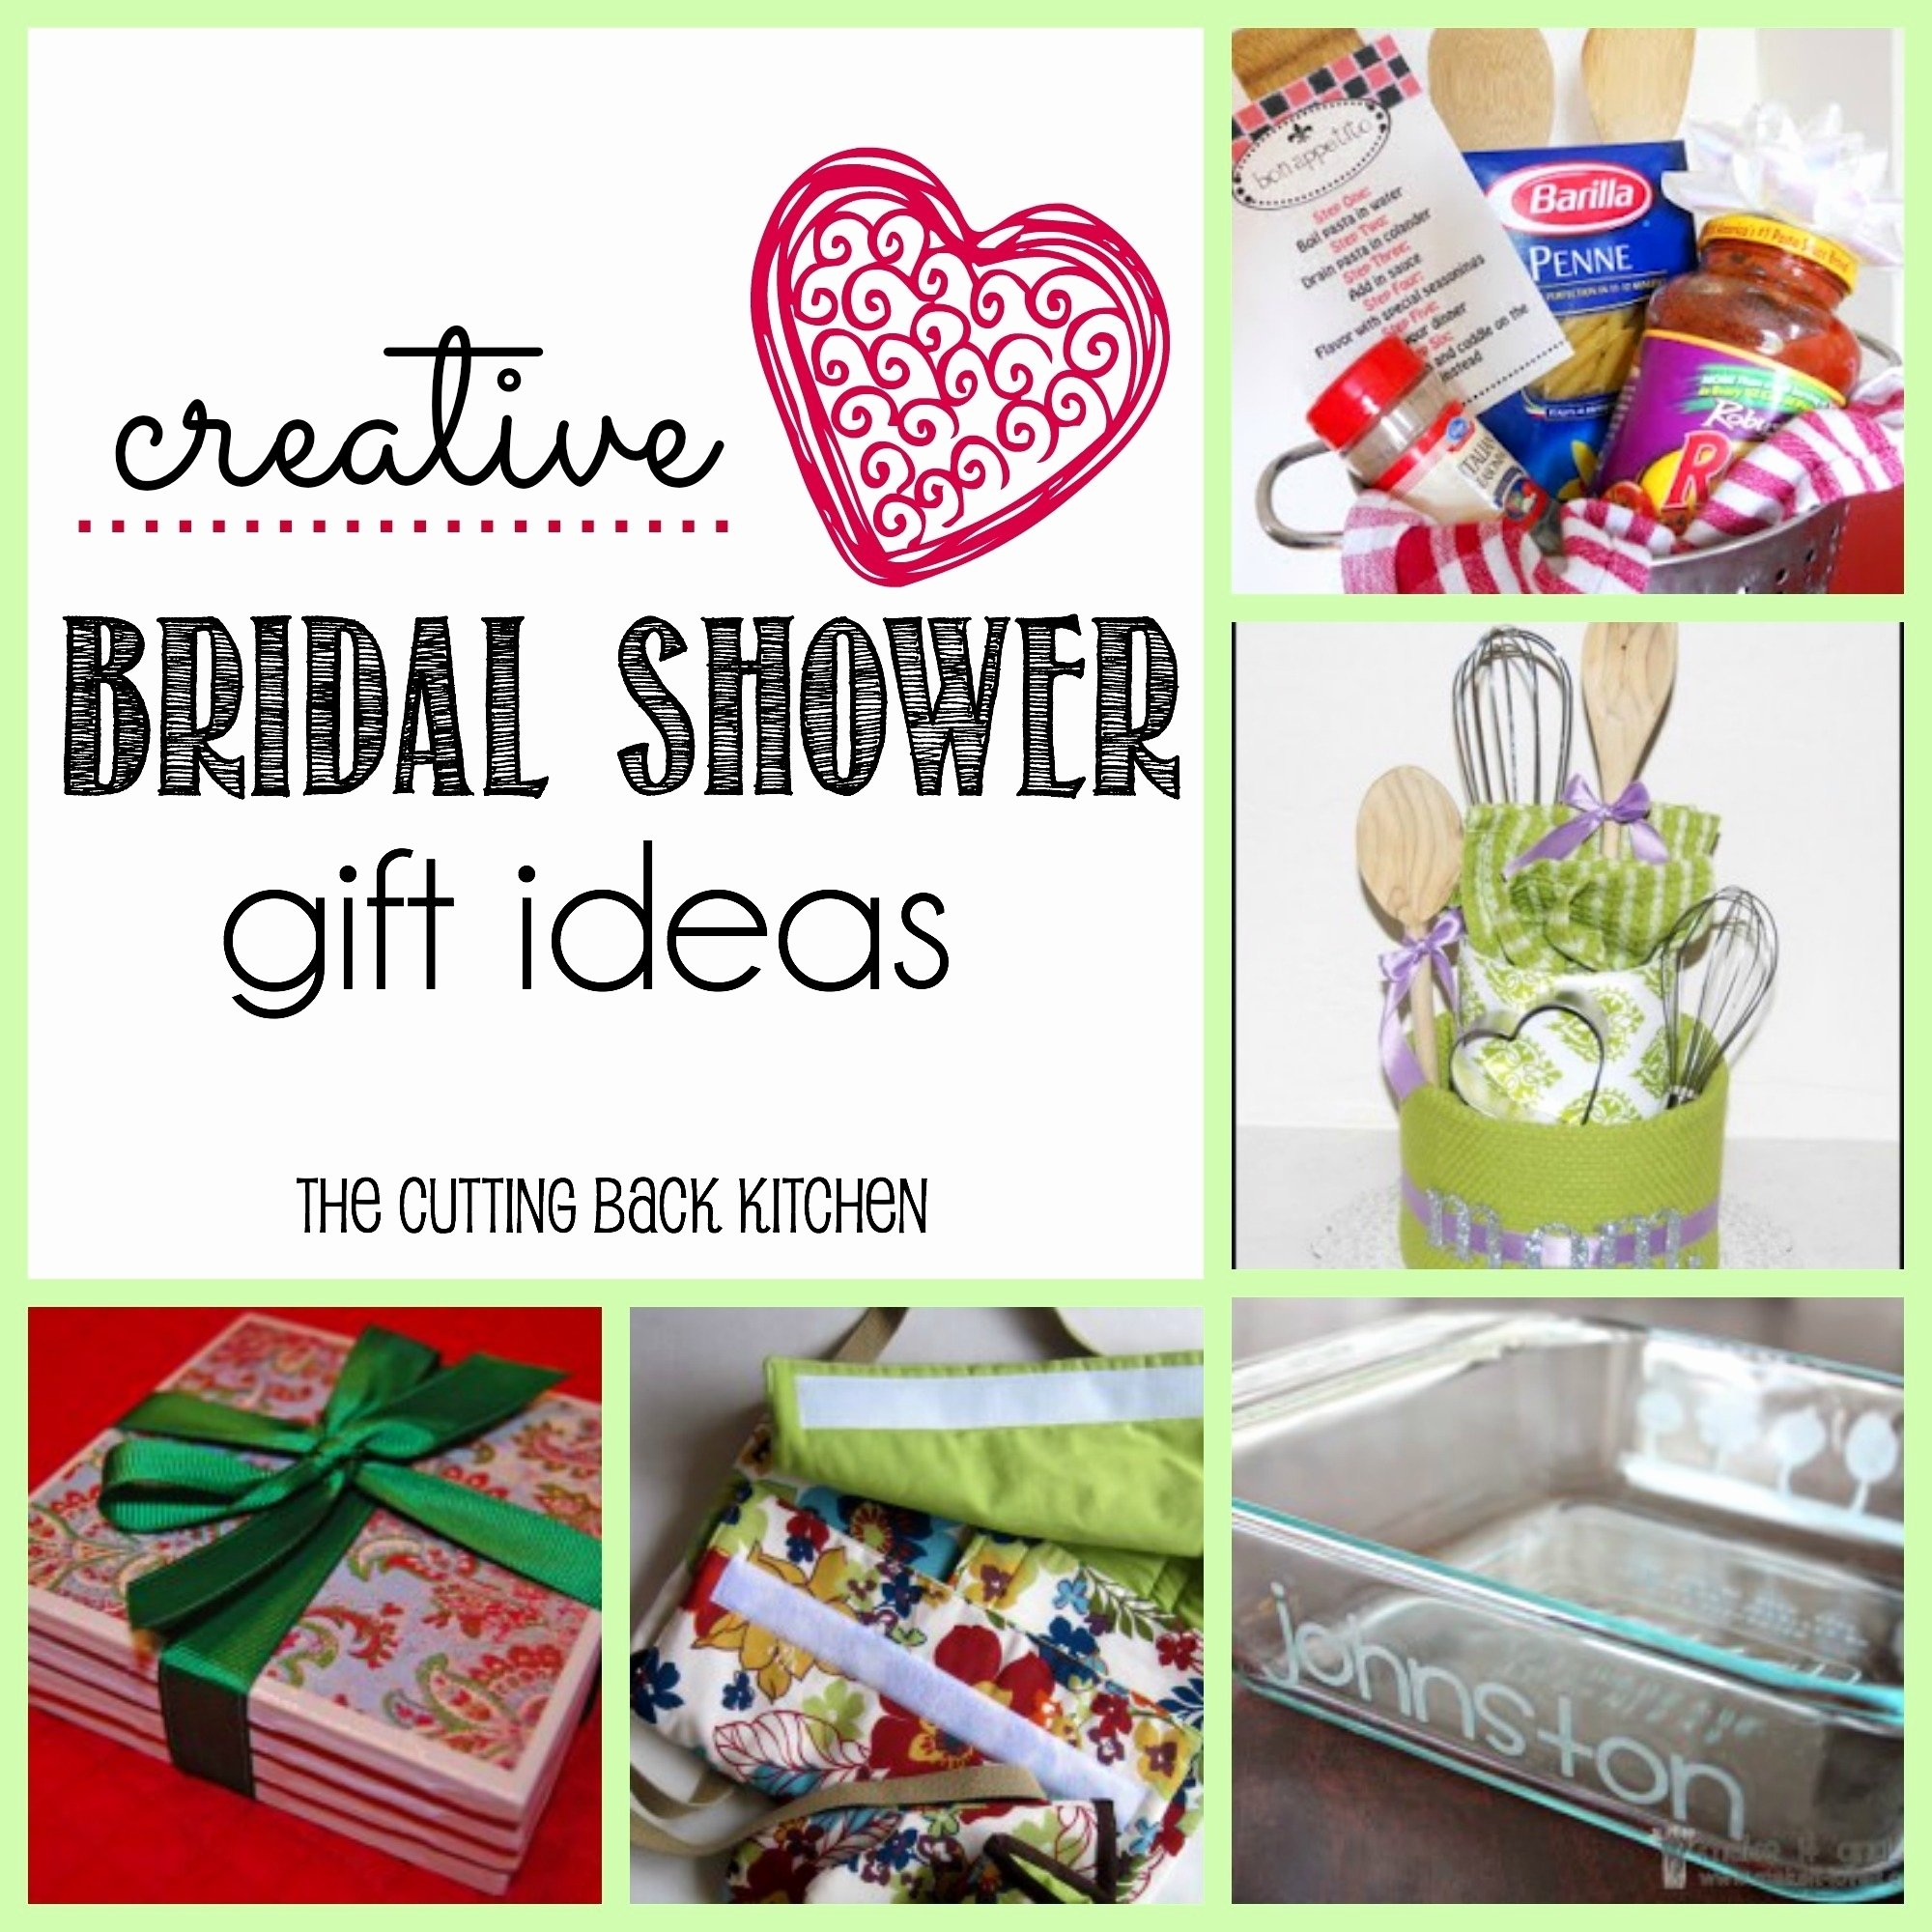 unique wedding gift basket ideas elegant ideas for creative bridal